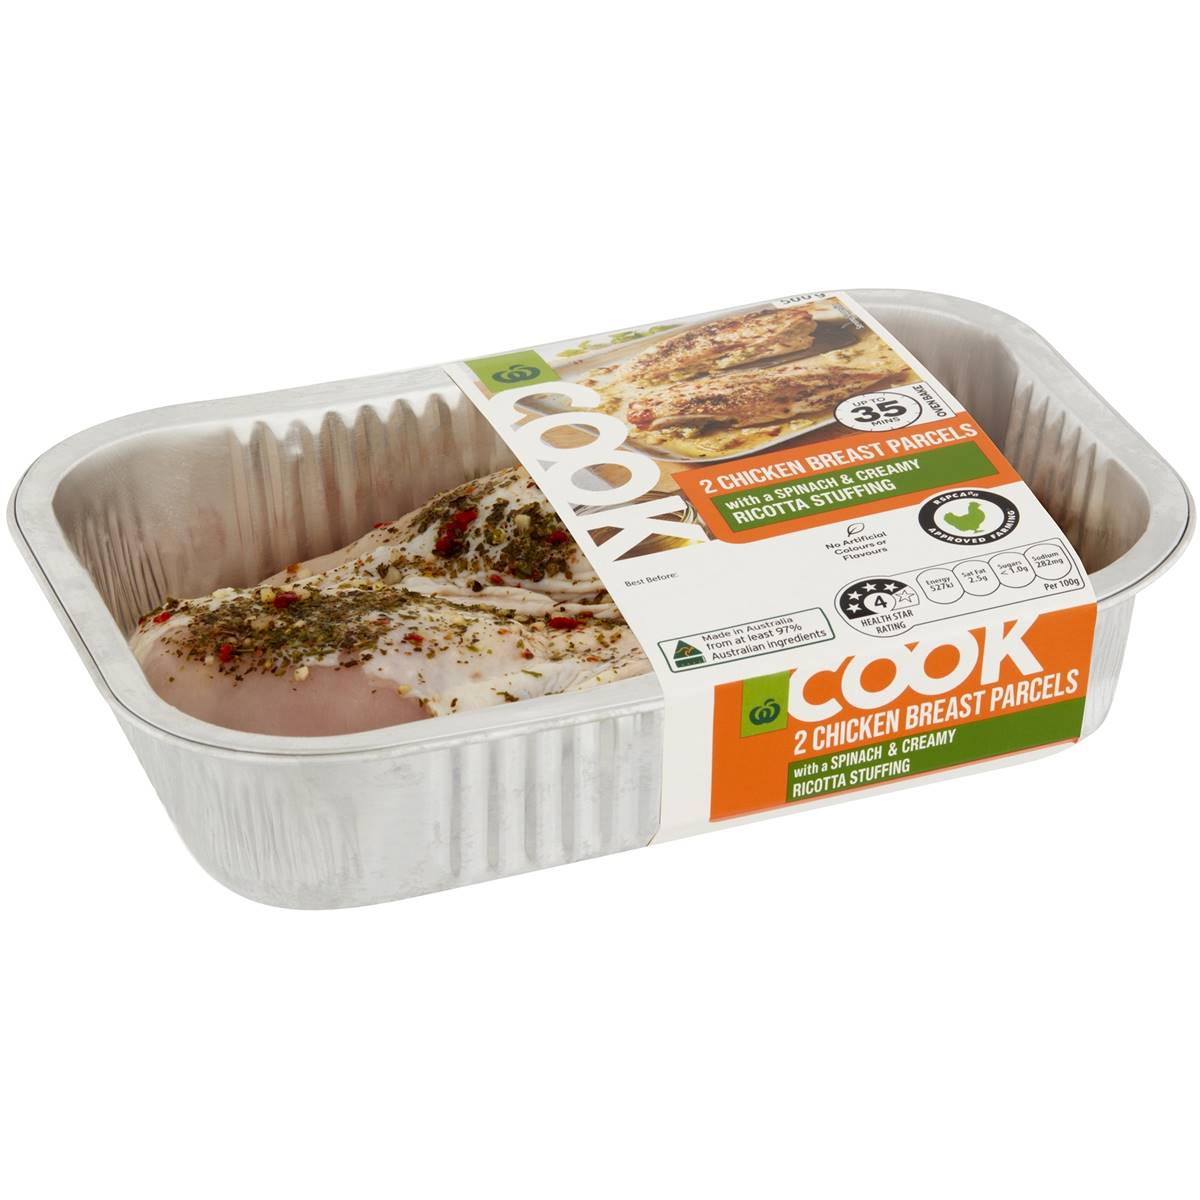 Woolworths Cook Chicken Breast Parcels With Spinach Ricotta